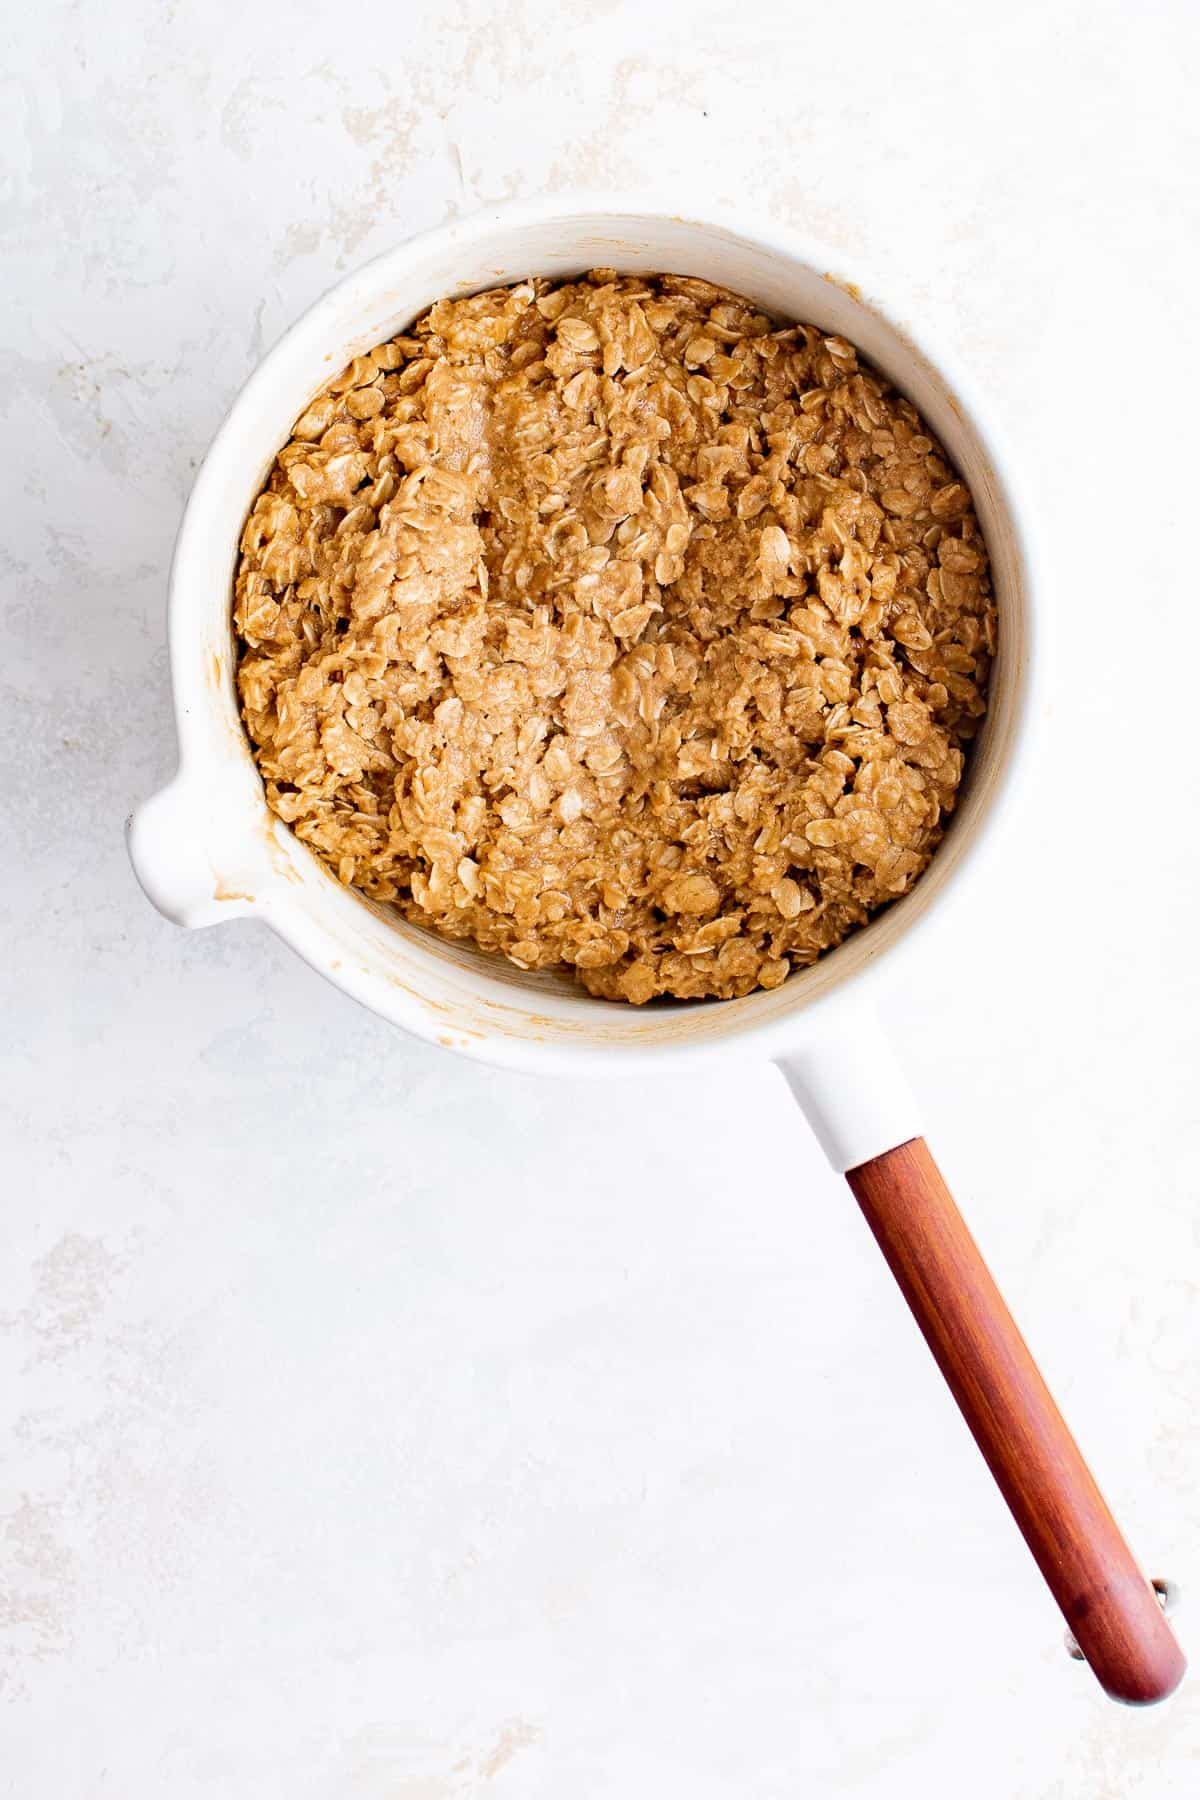 a sauce pan with melted butter, white sugar, brown sugar, peanut butter and oats in it